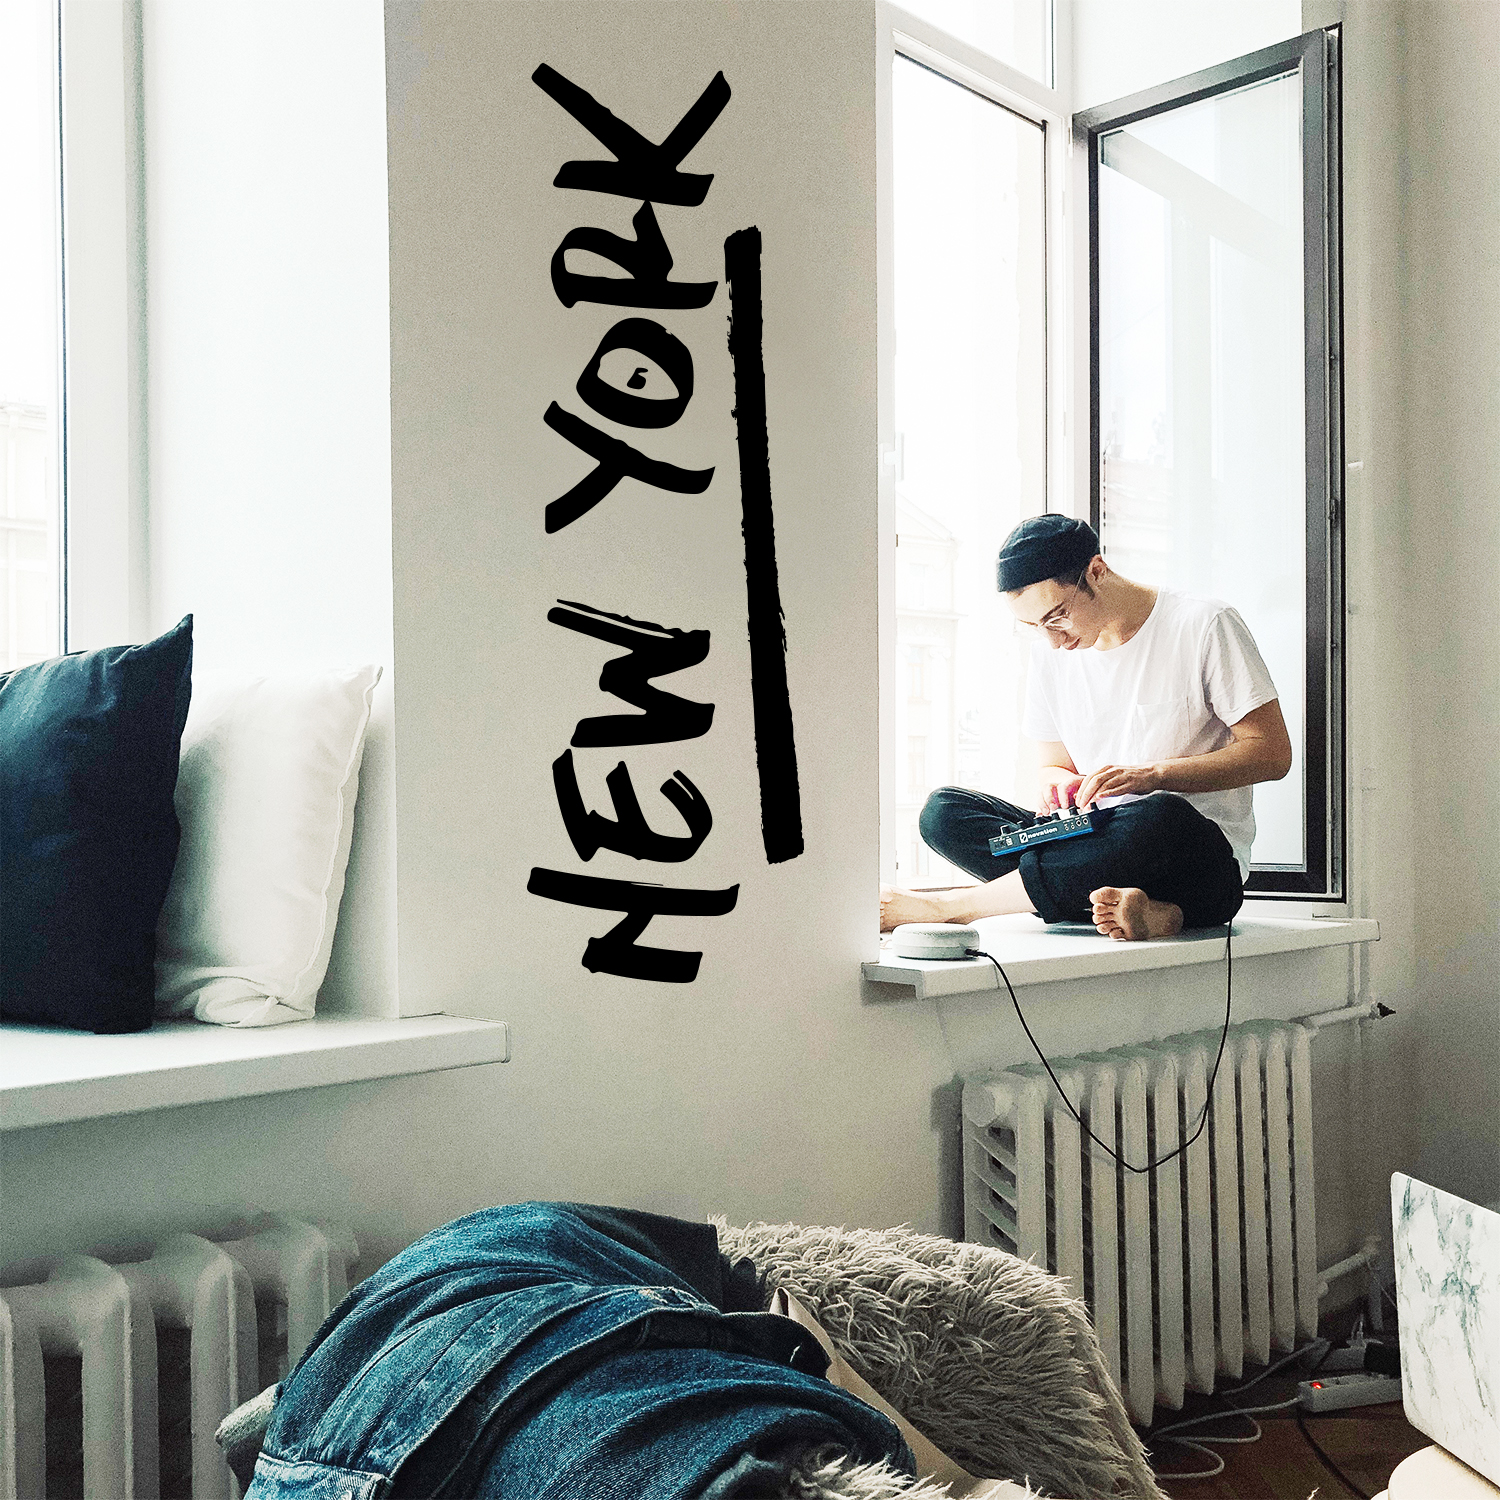 Vinyl Wall Art Decal - New York - 15* x 50* - Cool Stencil T